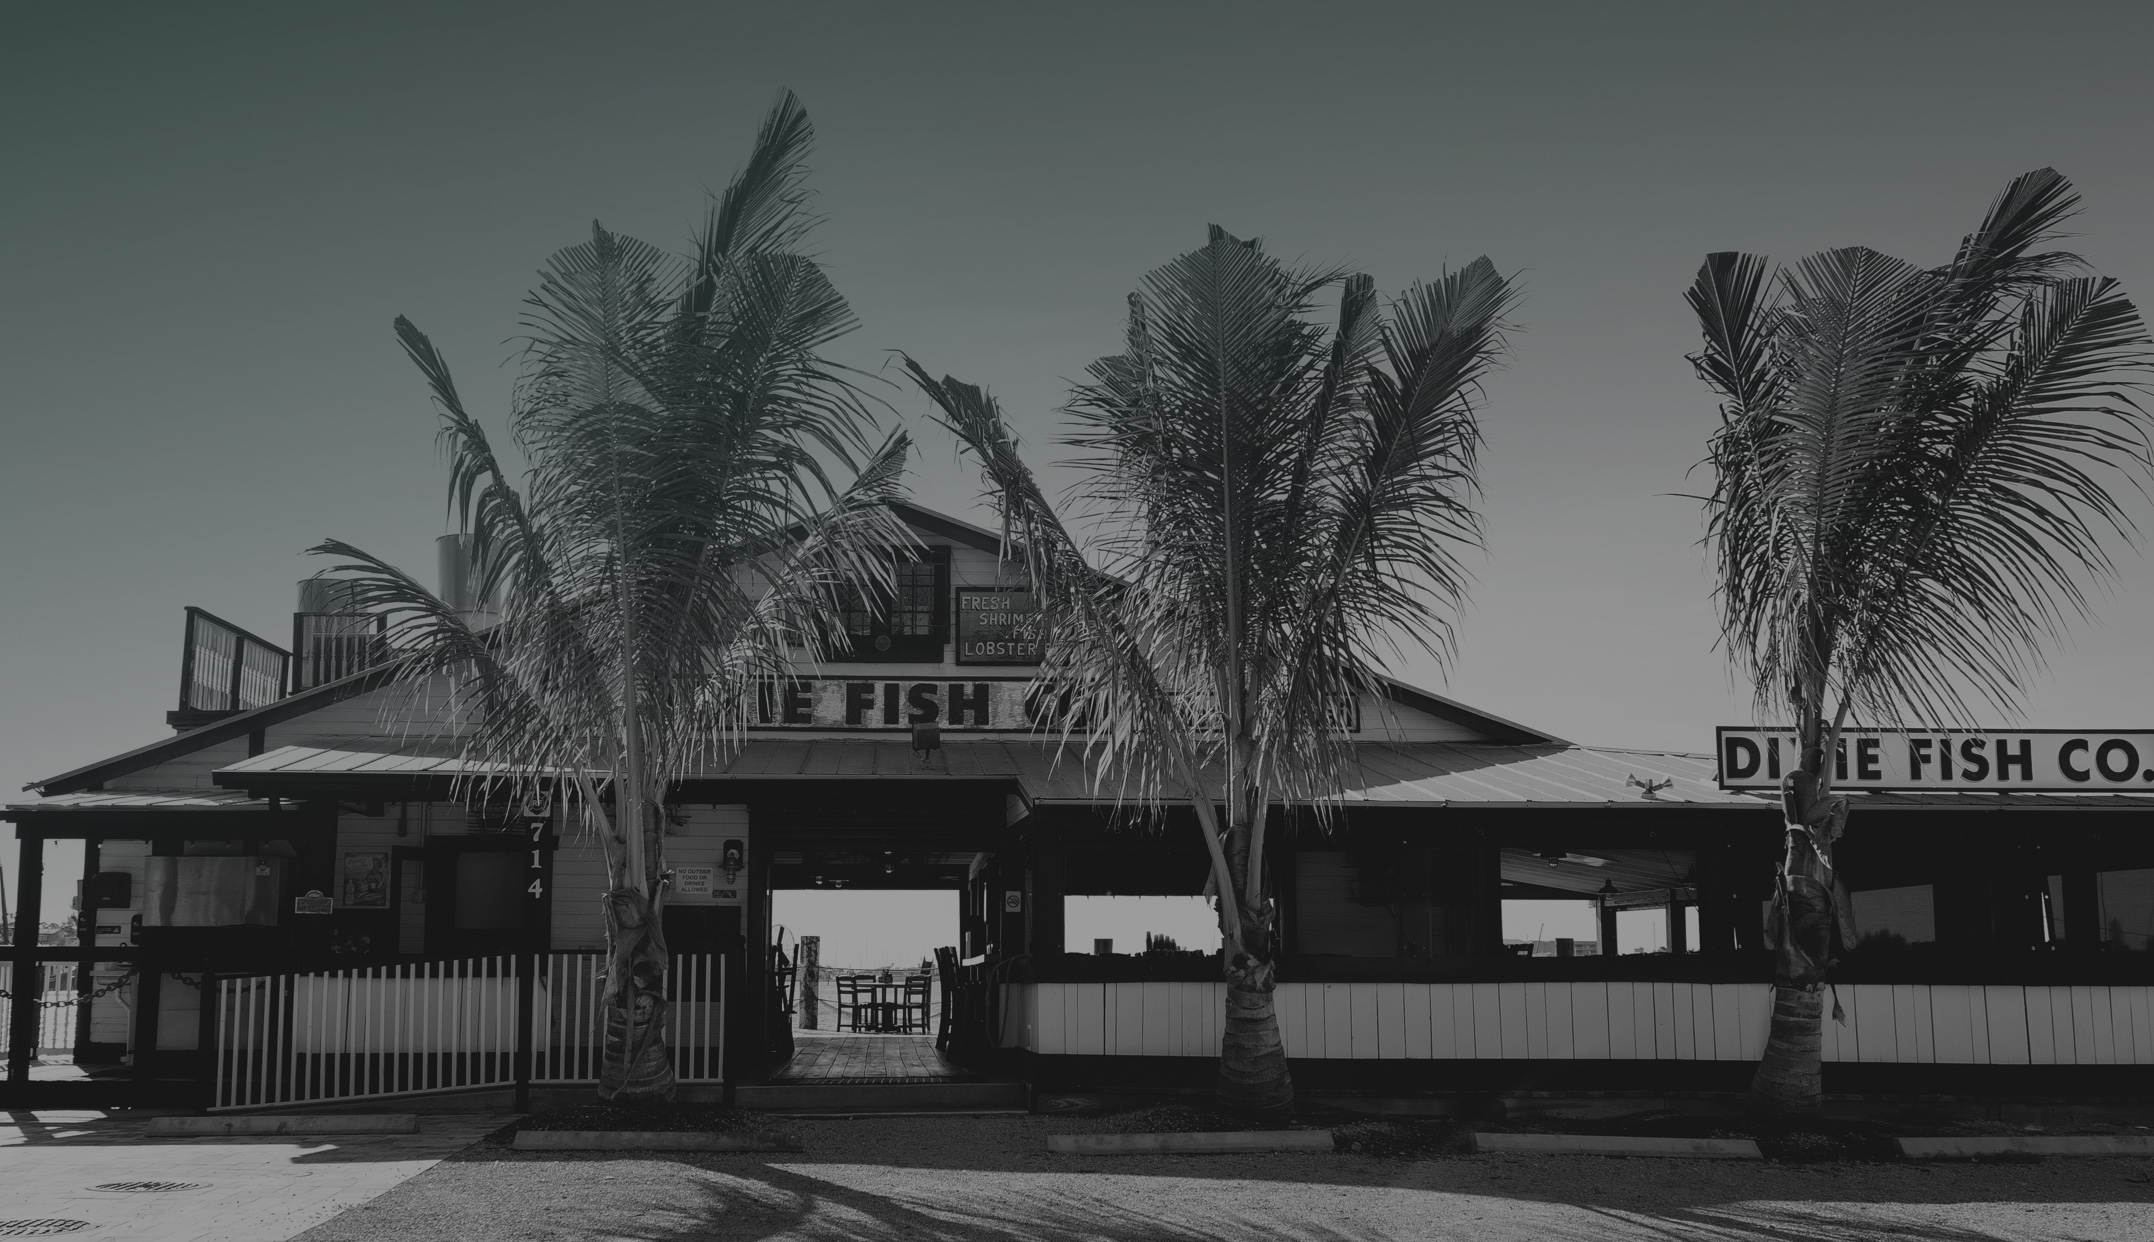 The dixie fish co ft myers beach waterfront restaurant for Dixie fish company